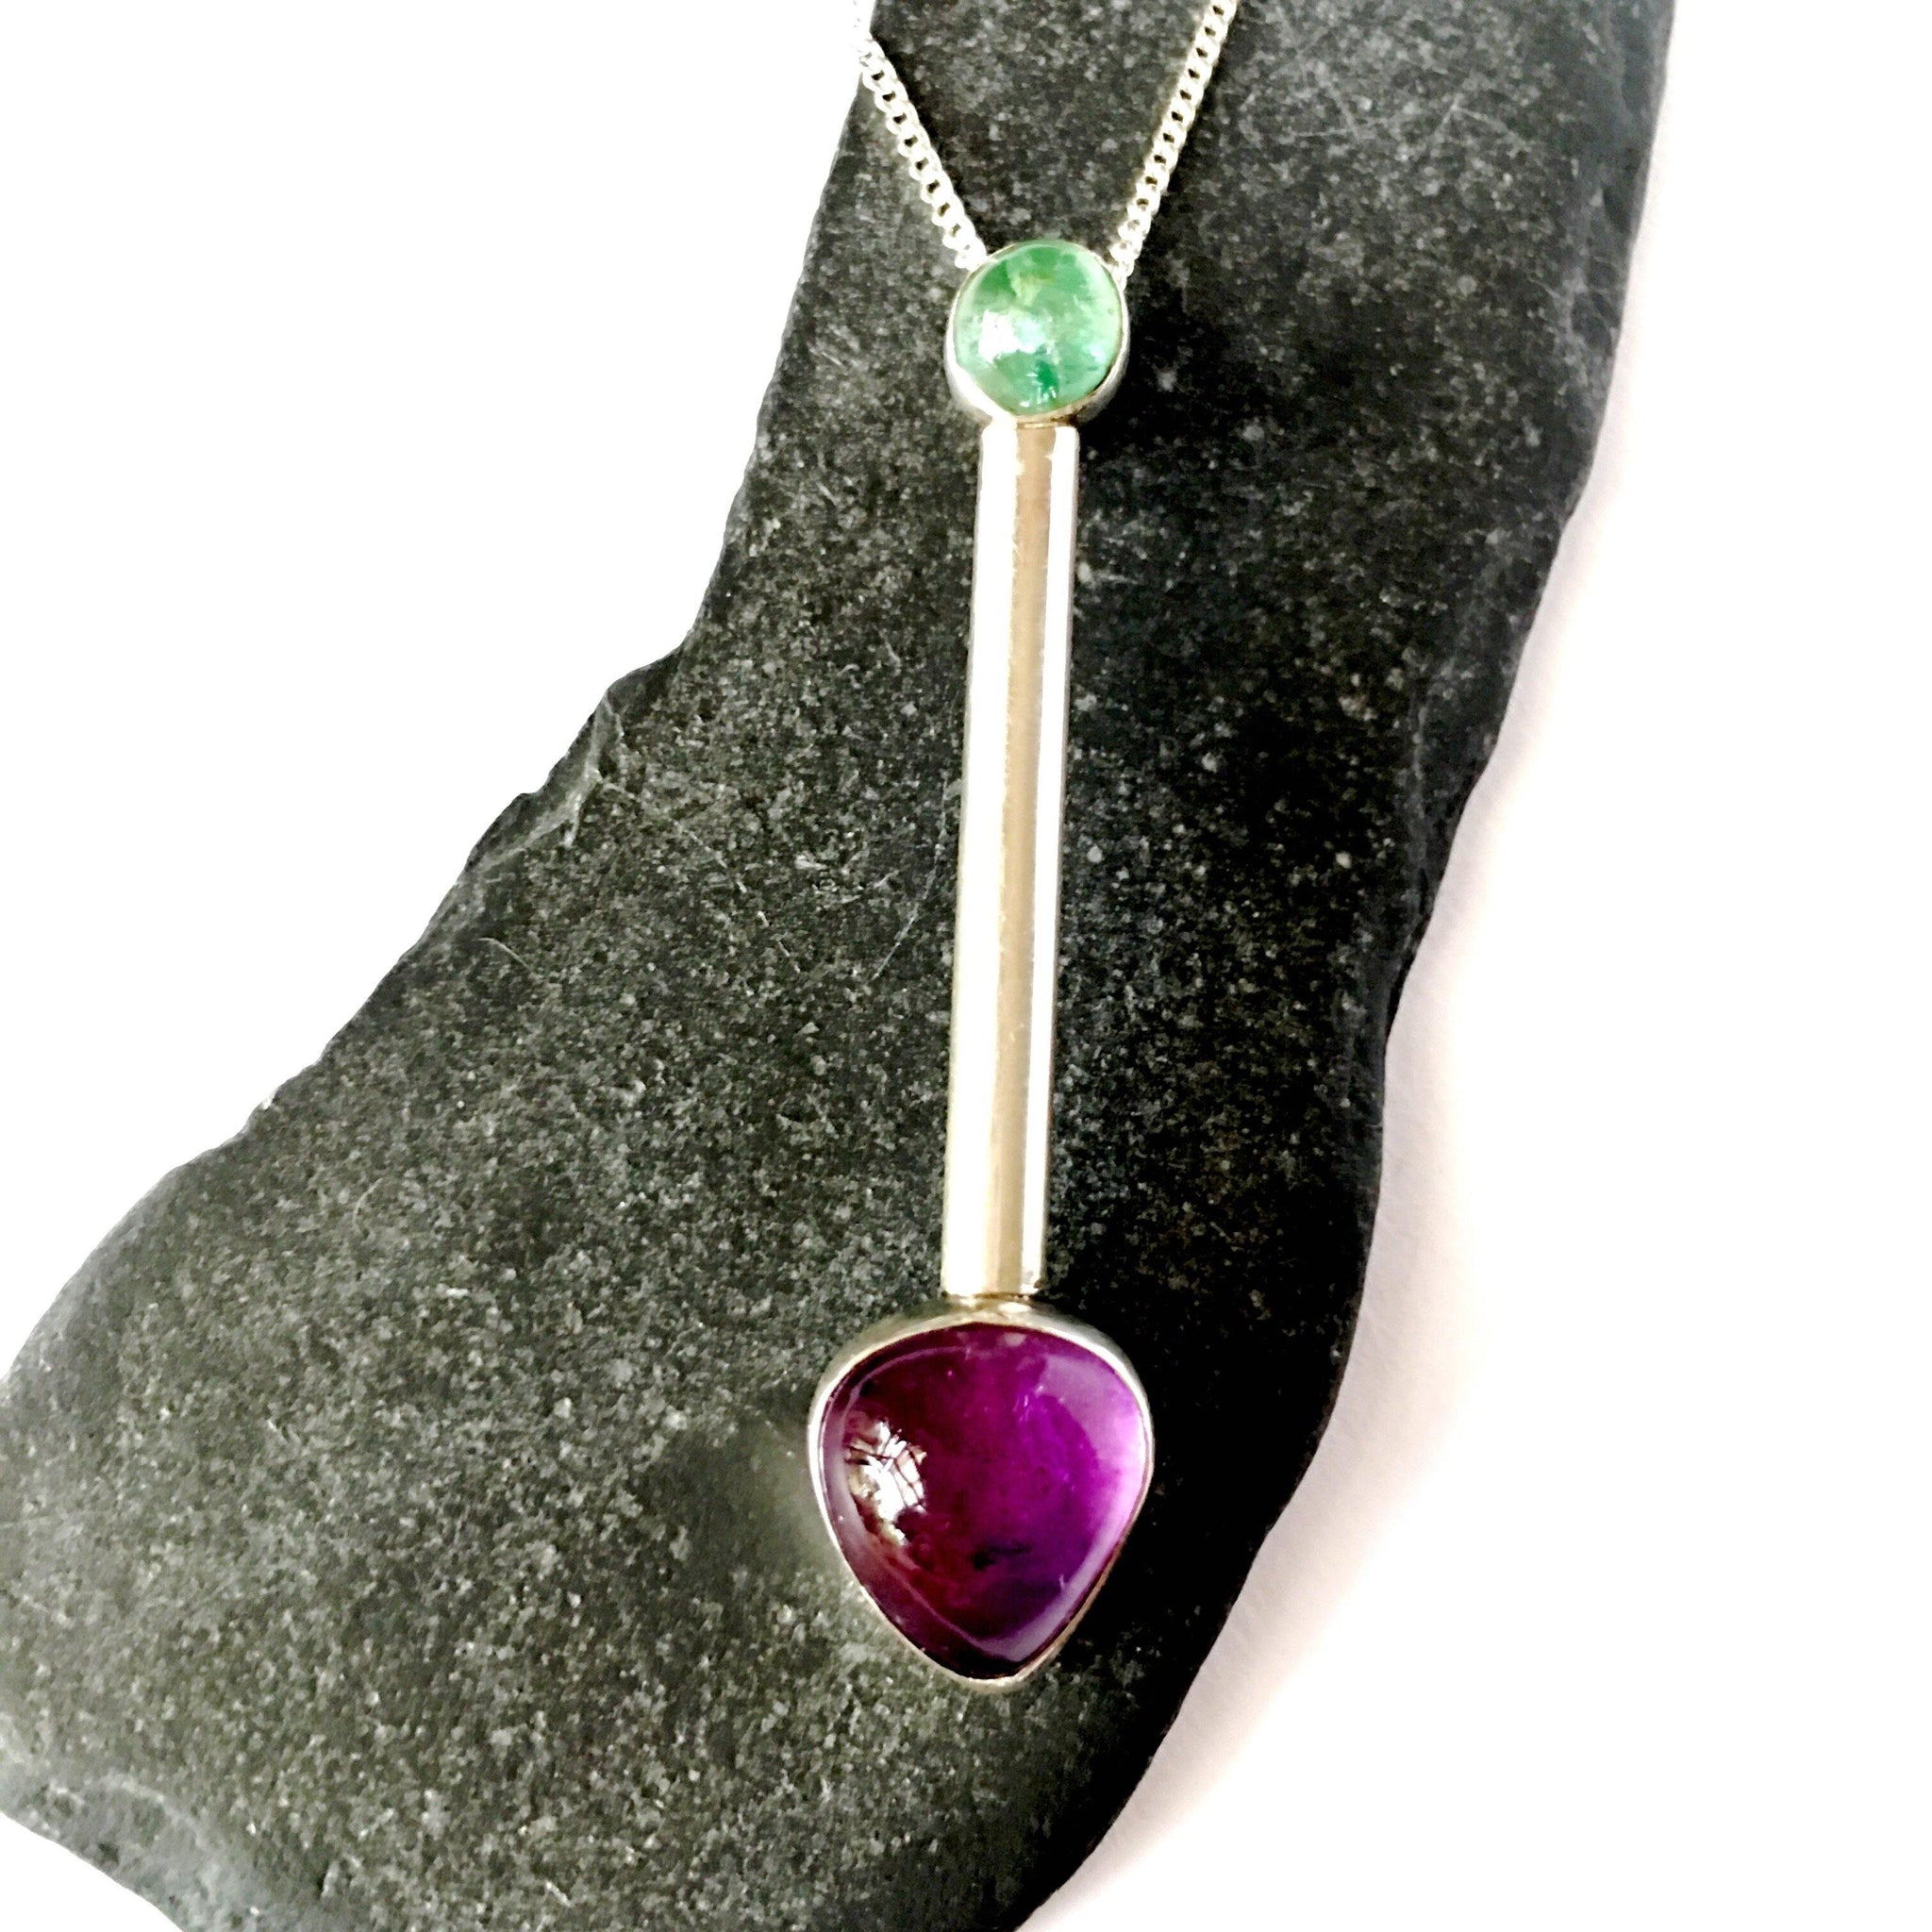 Amethyst & Fluorite Sterling Silver Pendant Necklace - Glitter and Gem Jewellery